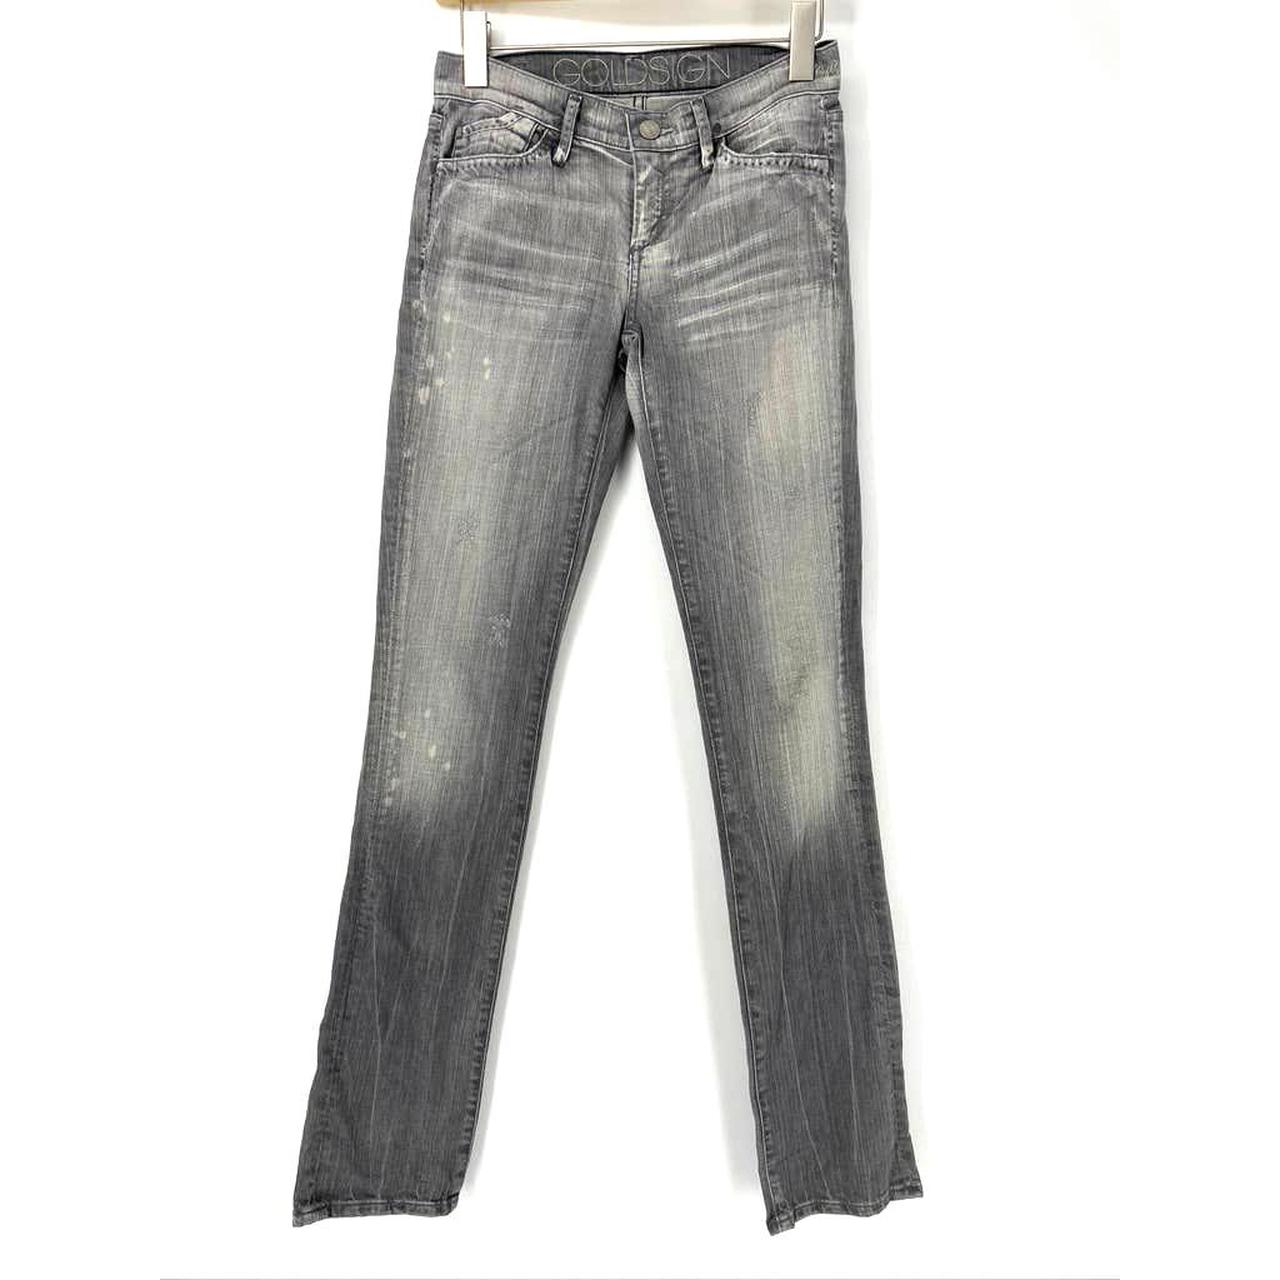 Product Image 1 - Here is a great pair